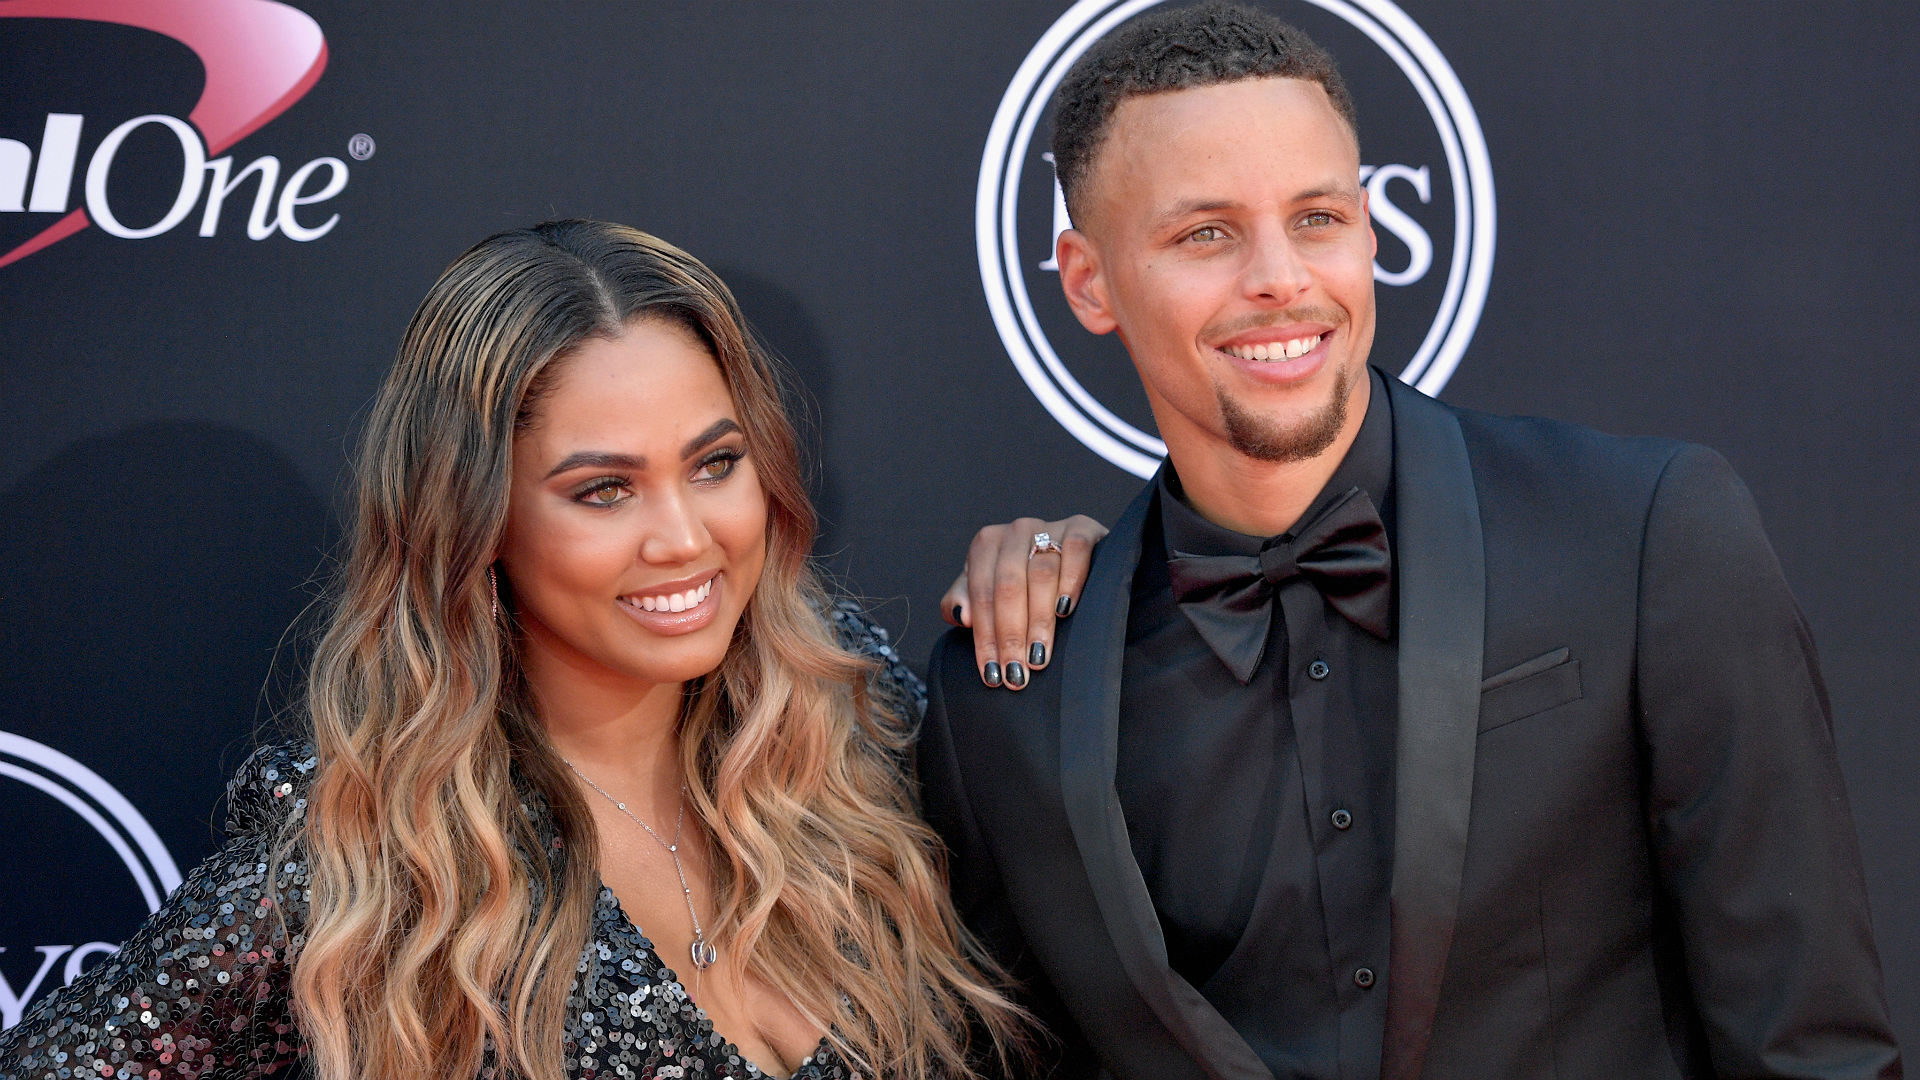 Ayesha Curry criticized as a hypocrite after she posts photo of herself in a swimsuit